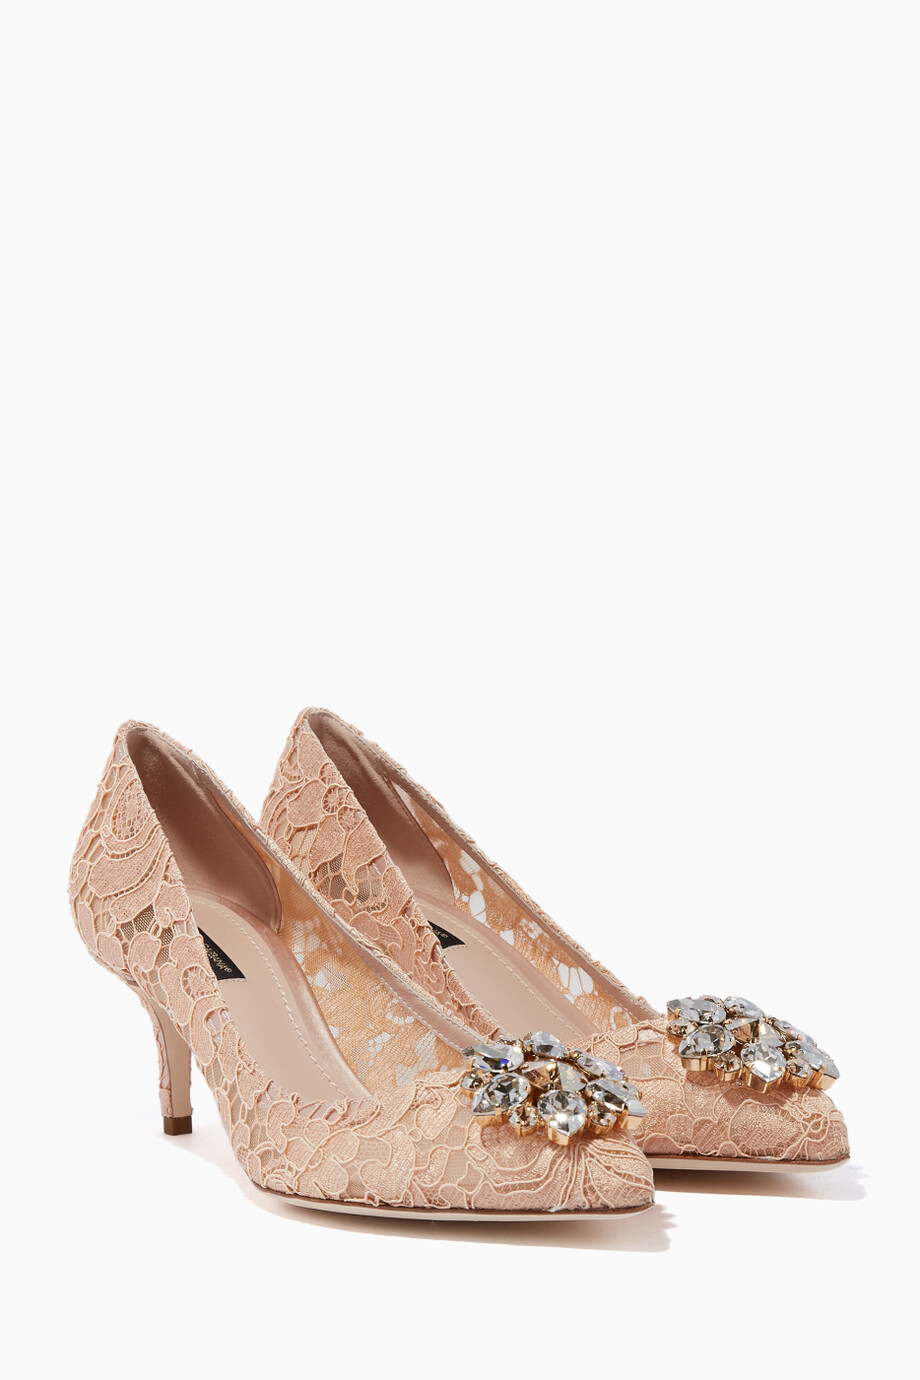 8ef0540a07d Shop Dolce   Gabbana Pink Blush Bellucci Embellished Lace Pumps for ...